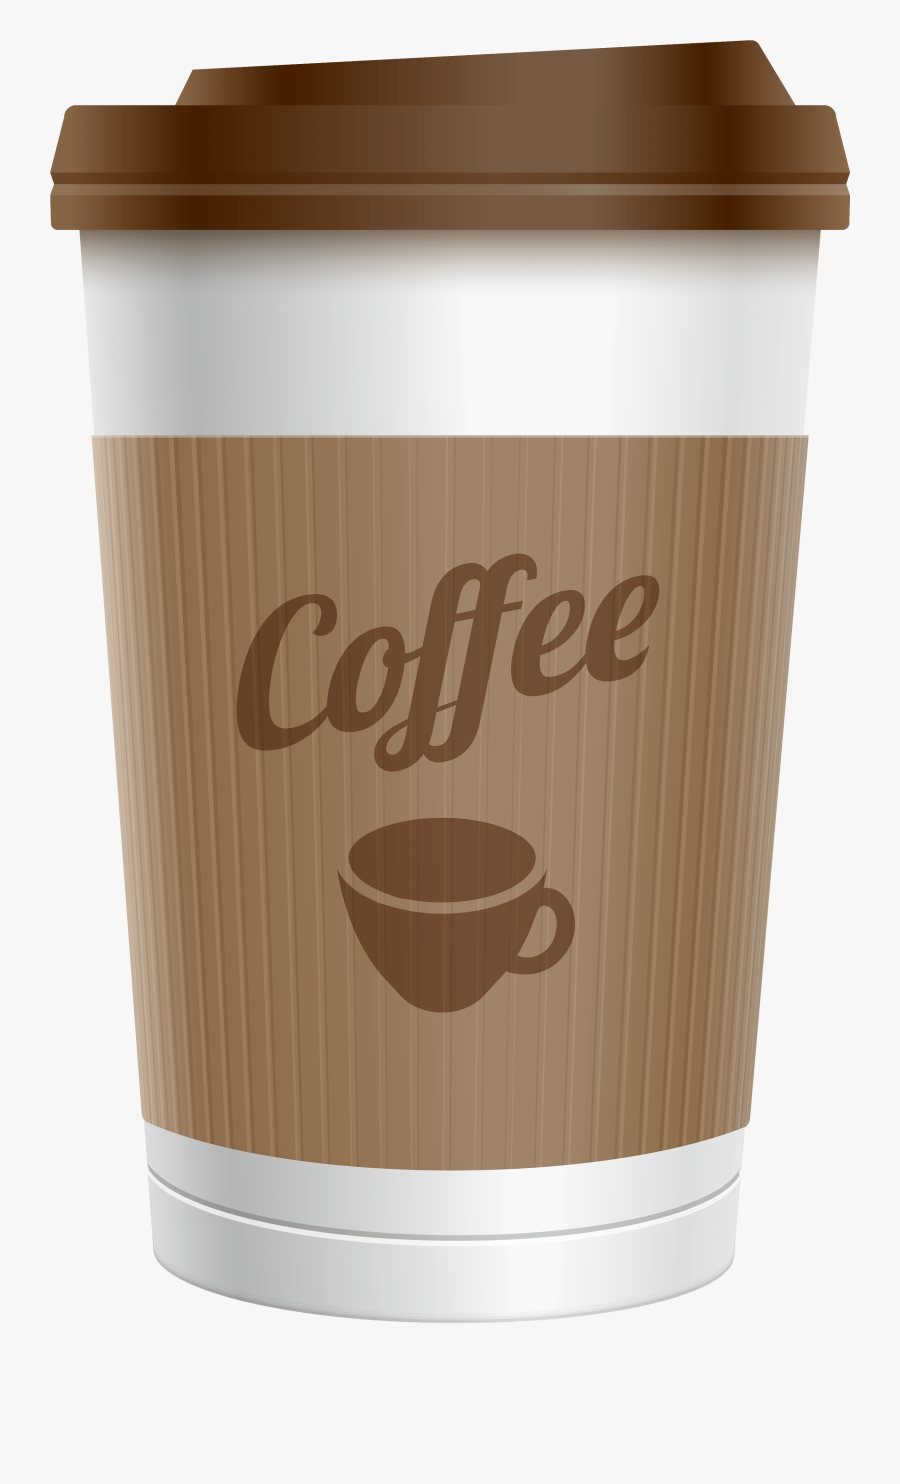 Coffee Clipart Plastic Cup Pencil And In Color Coffee - Transparent Background Coffee Cup Png, Transparent Clipart